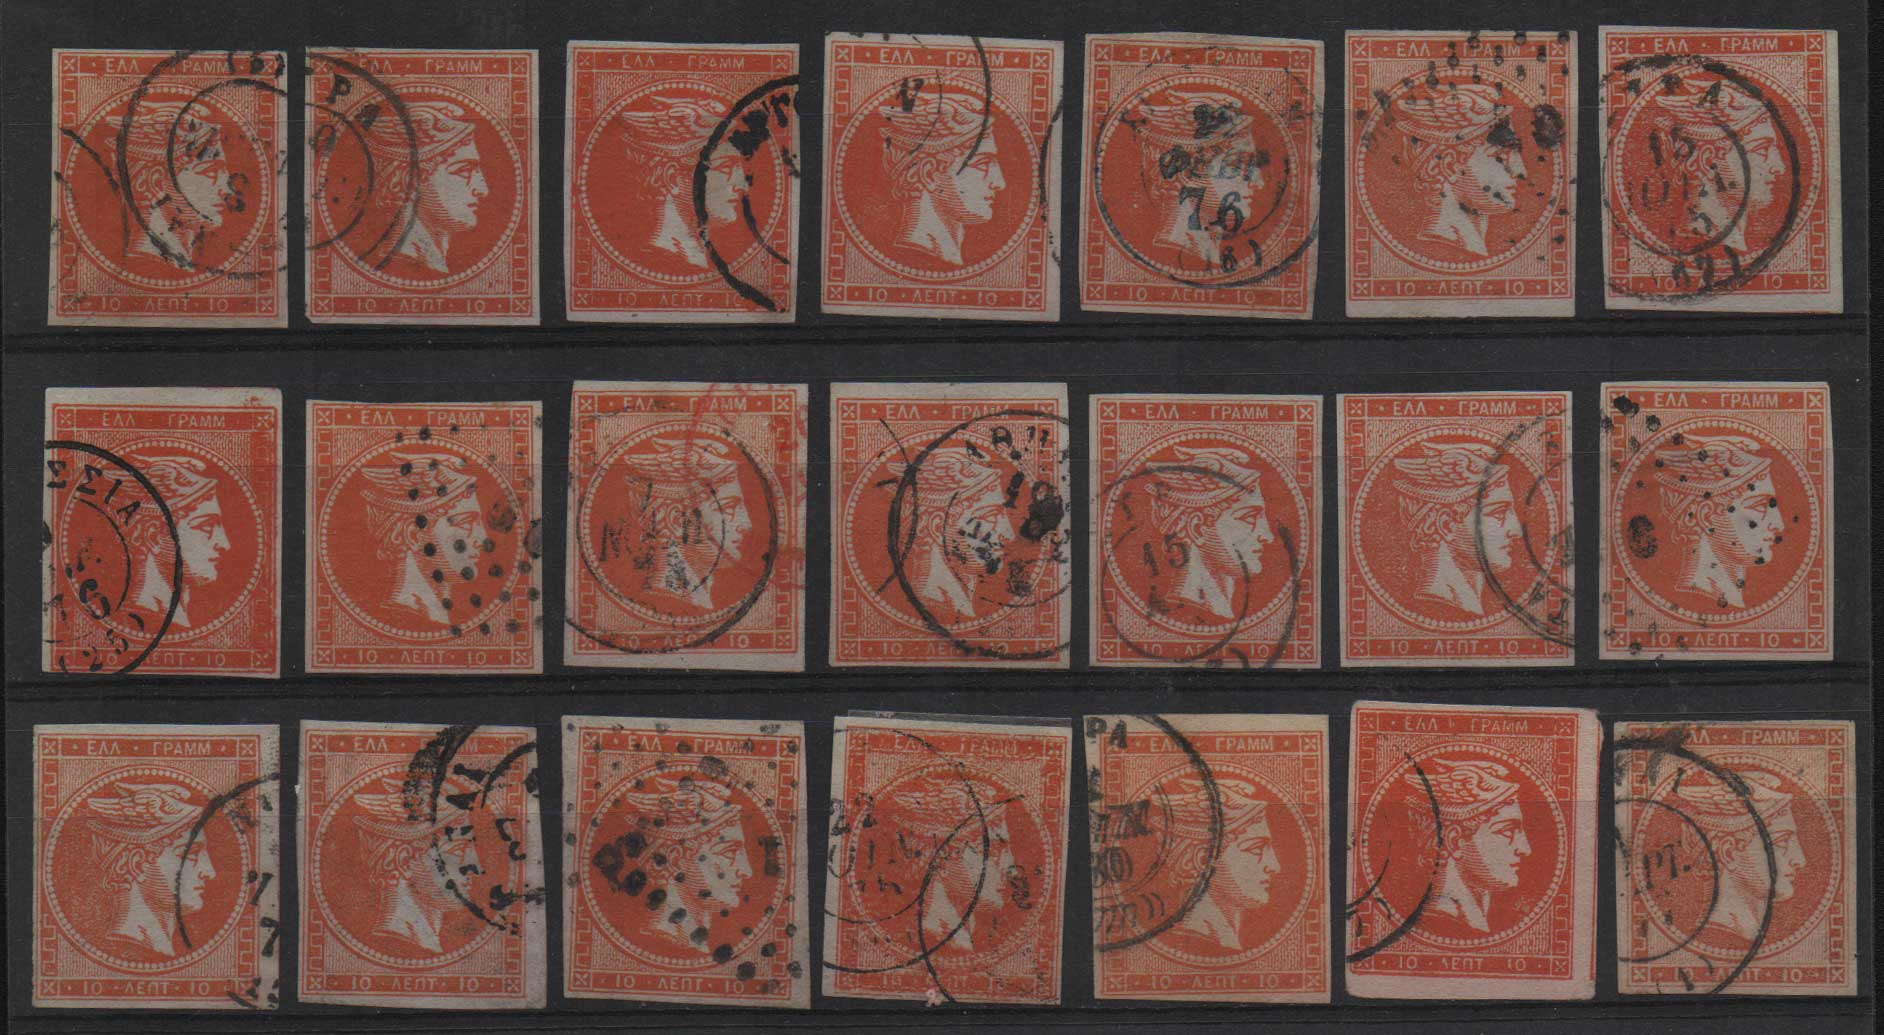 Lot 14 - -  LARGE HERMES HEAD large hermes head -  Athens Auctions Public Auction 69 General Stamp Sale